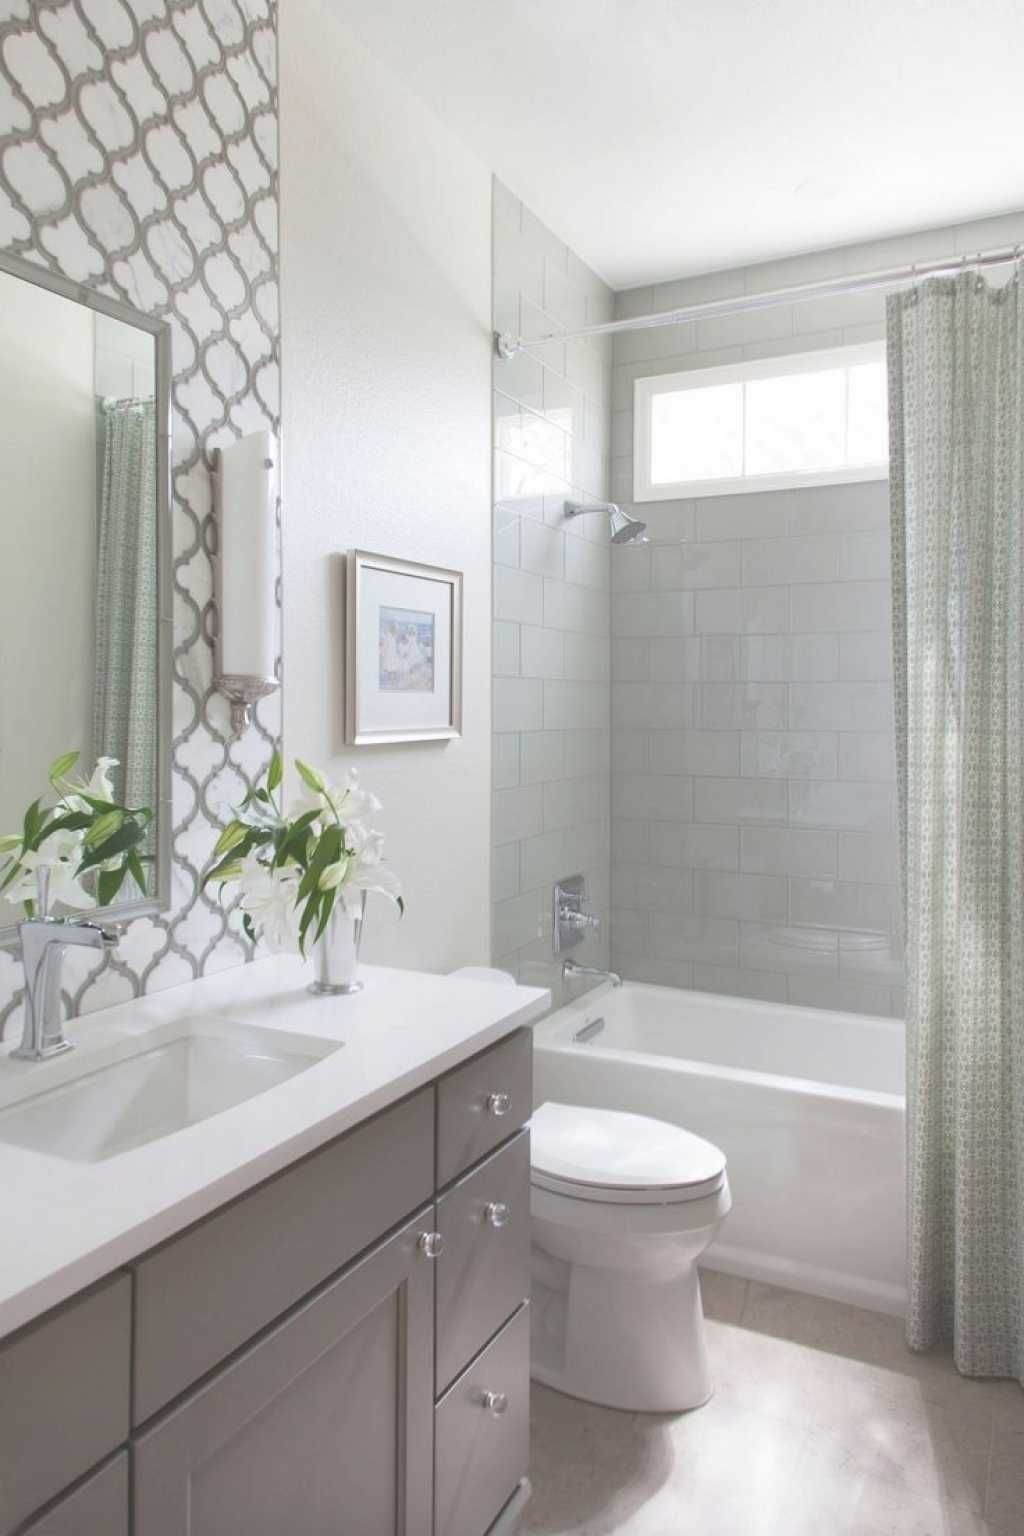 Elegant Bathroom Design Ideas For Small Bathrooms On A Budget Home Decor Modern Small Bathrooms Small Bathroom Remodel Simple Bathroom